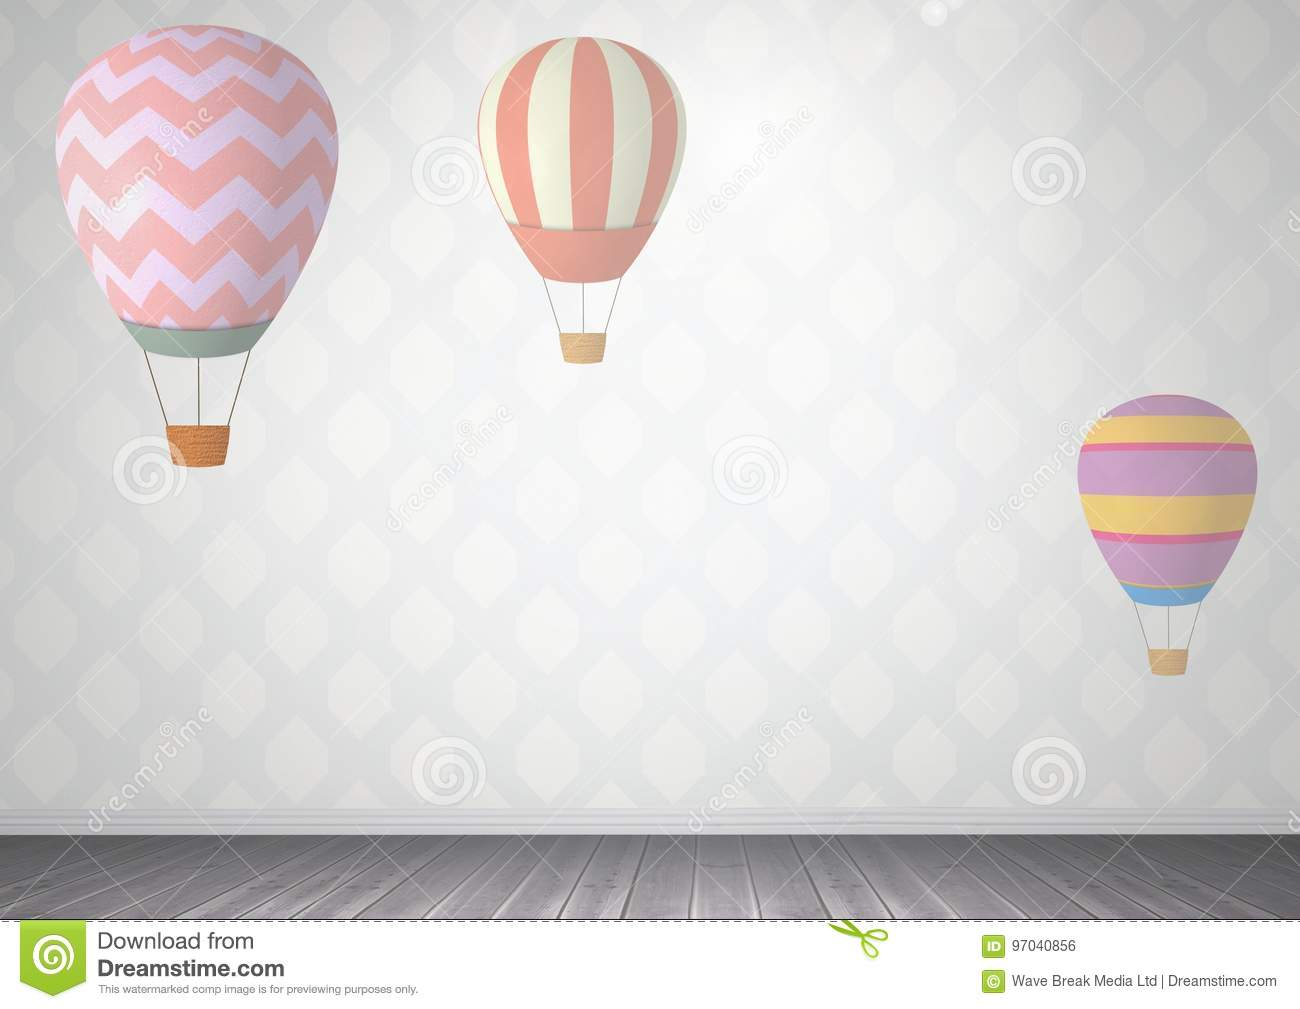 hot air balloons in room